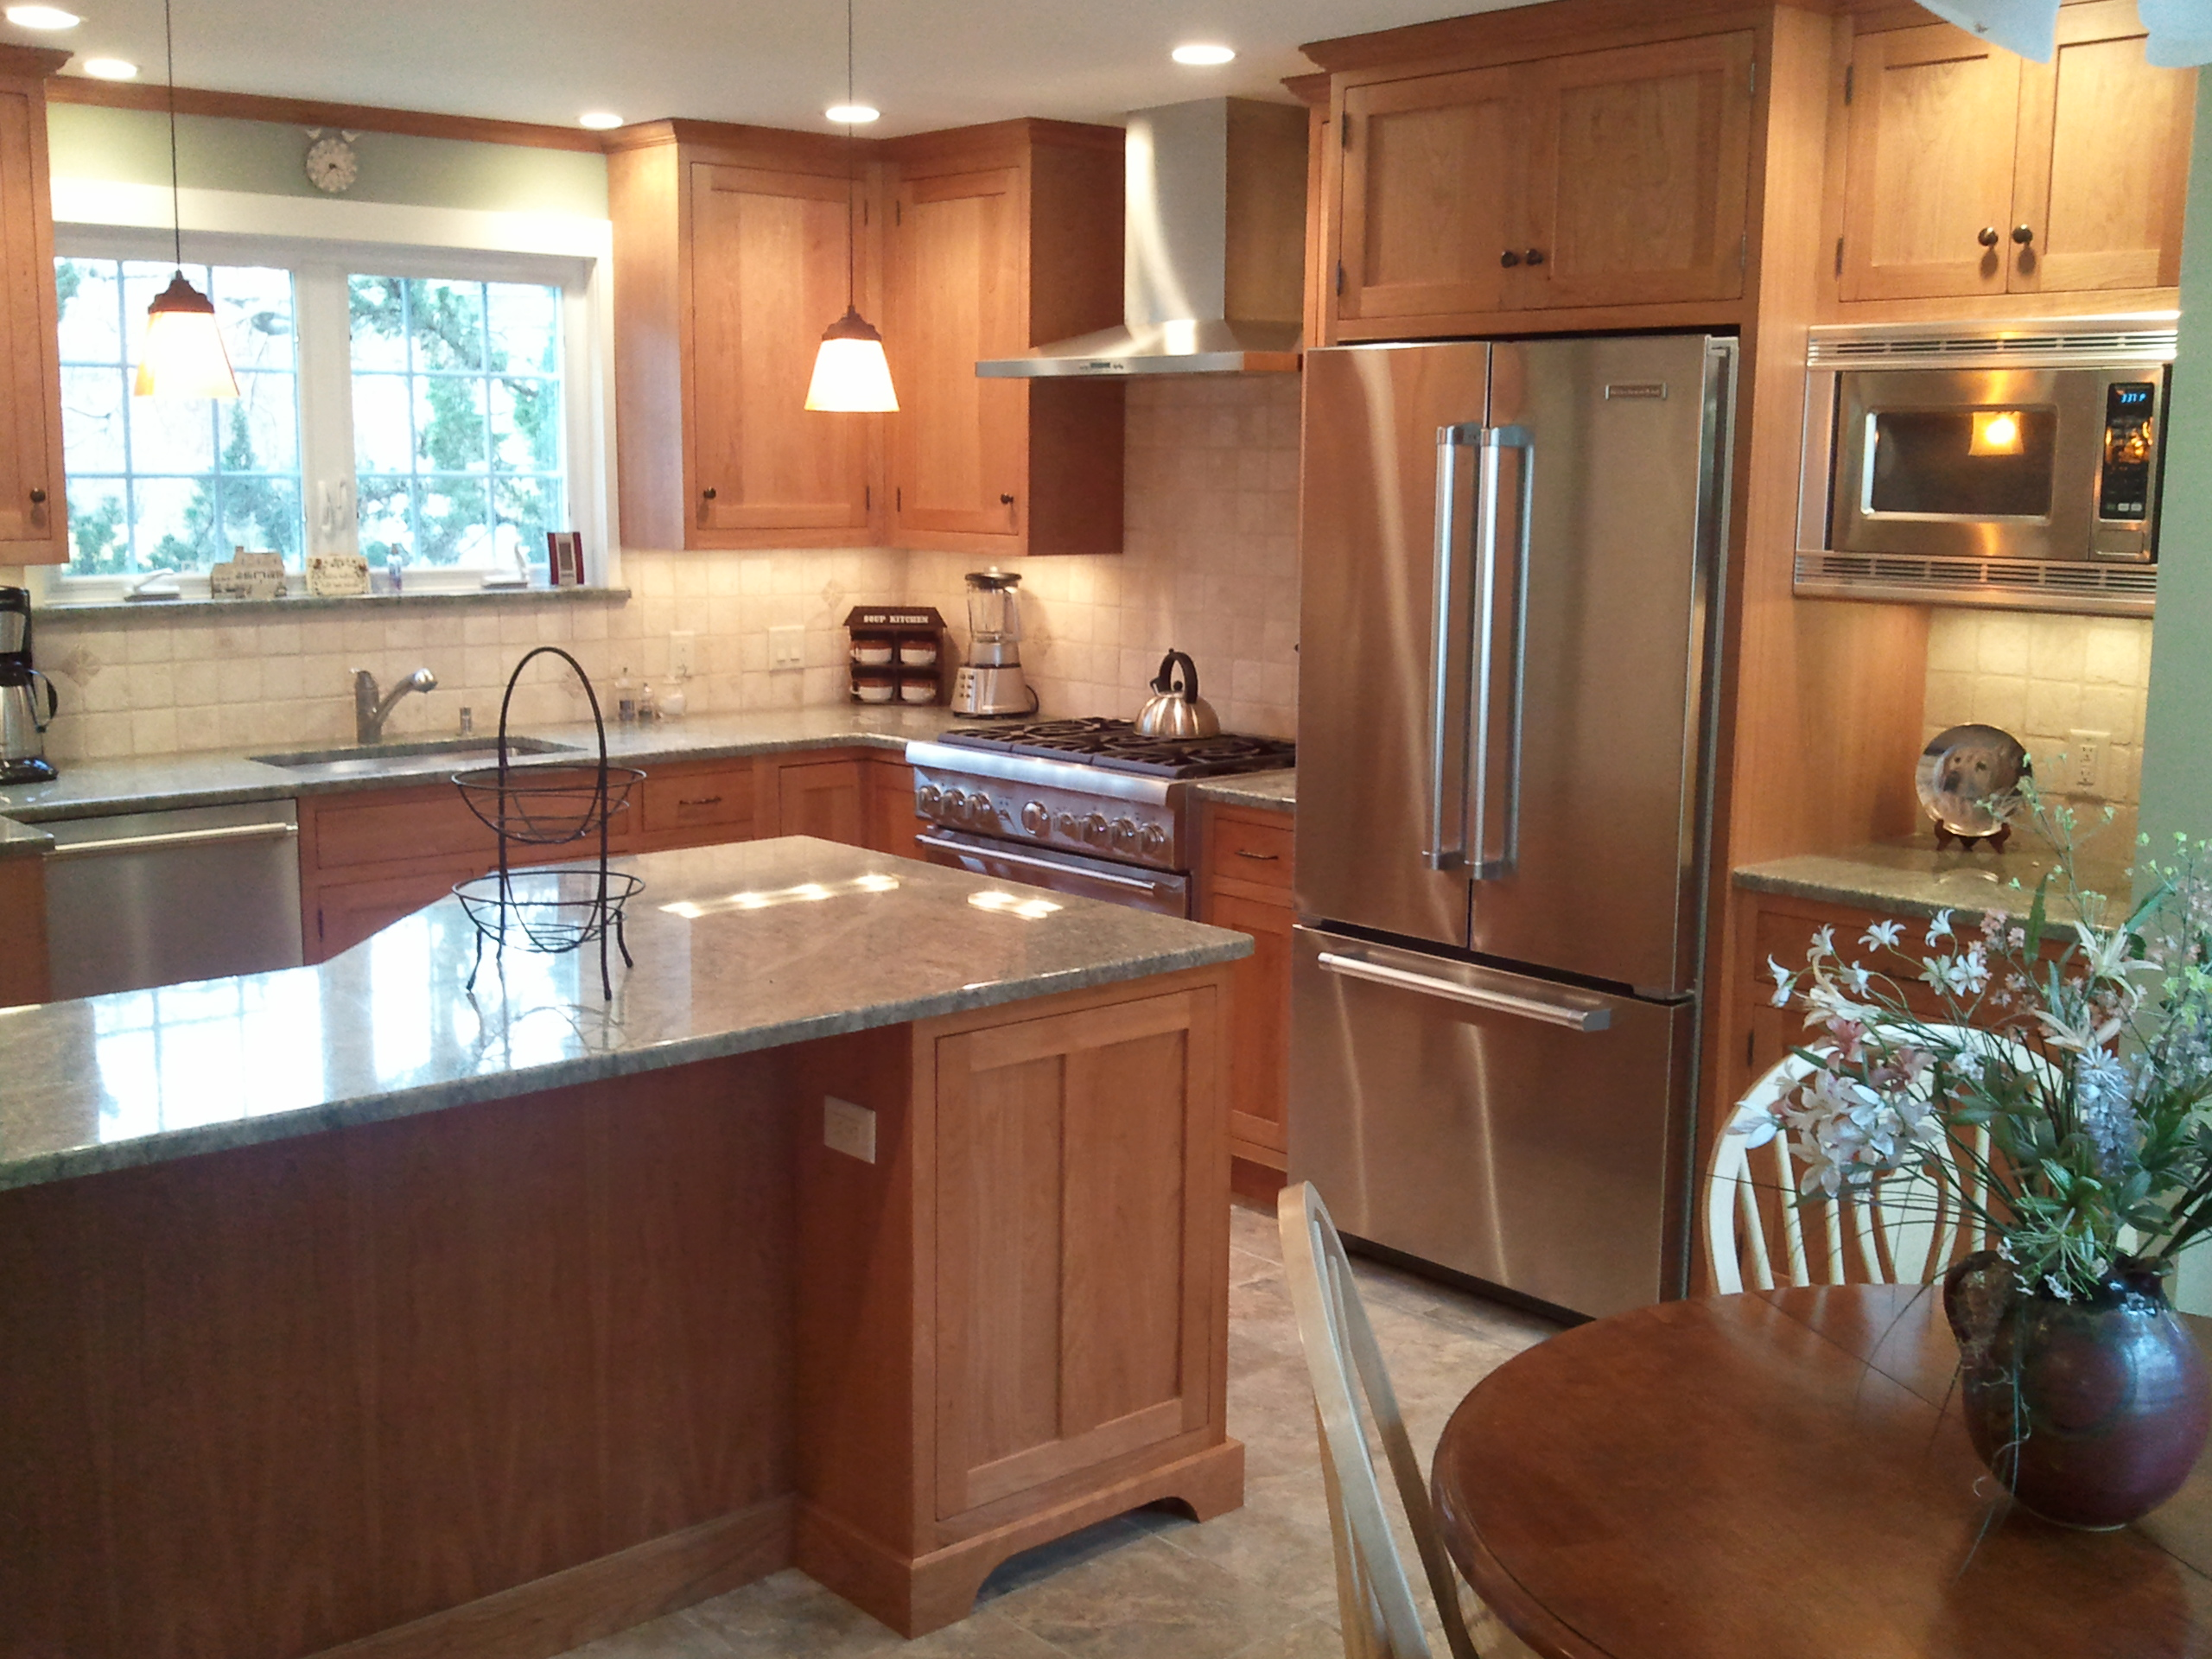 most common wood used in kitchen cabinets kitchen cabinet designs rh statsession com